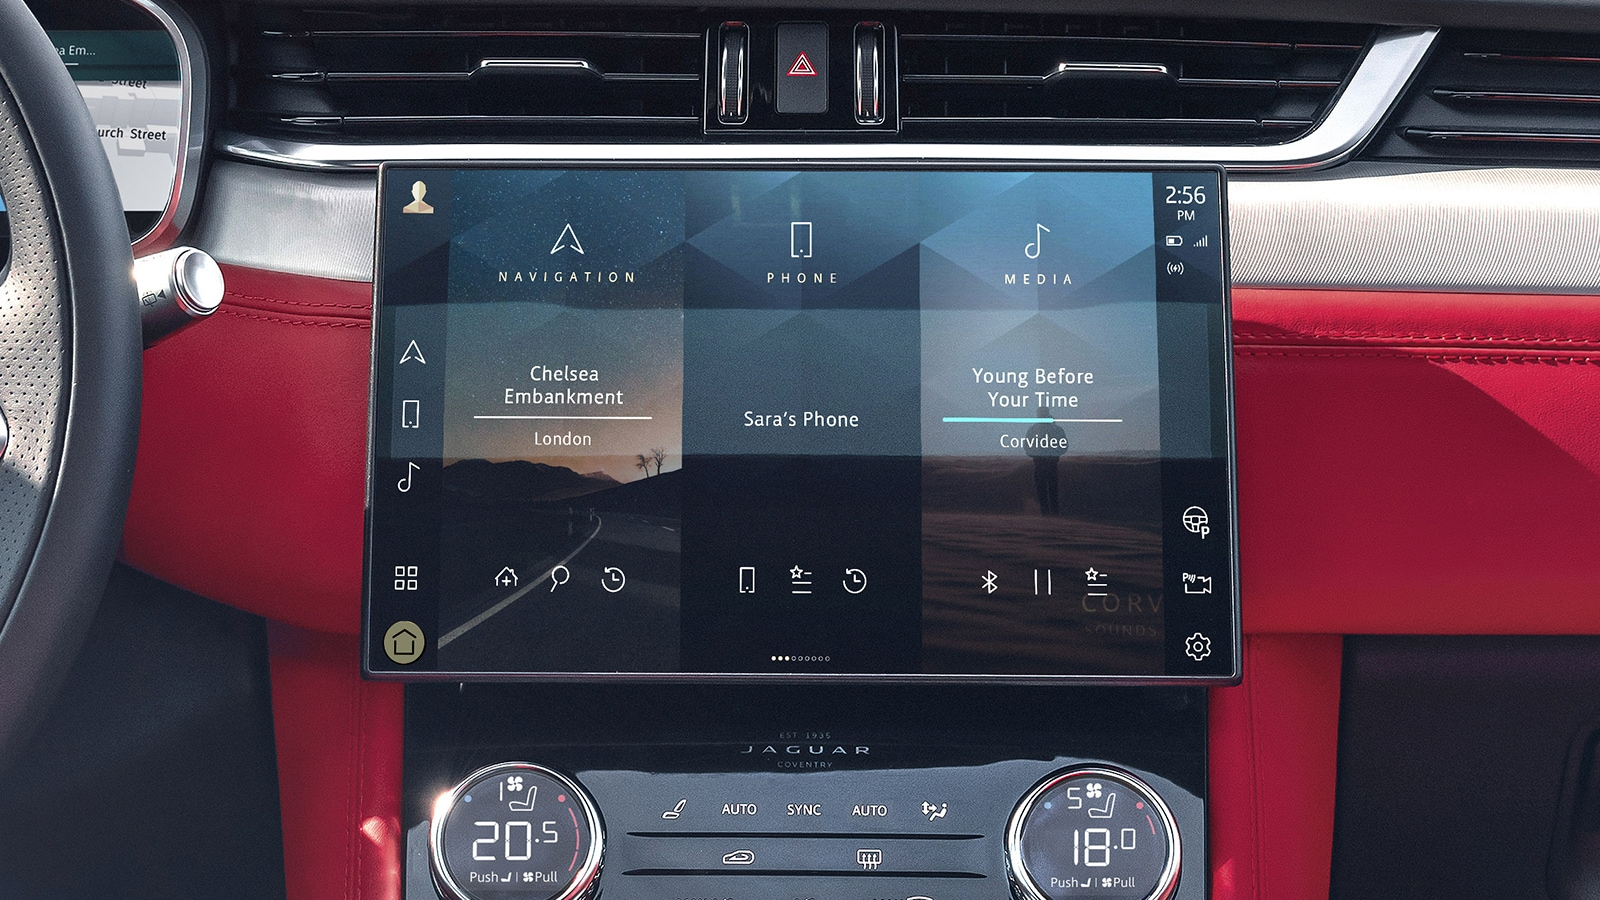 The new F-Pace gets a 11.4-inch main infotainment screen.